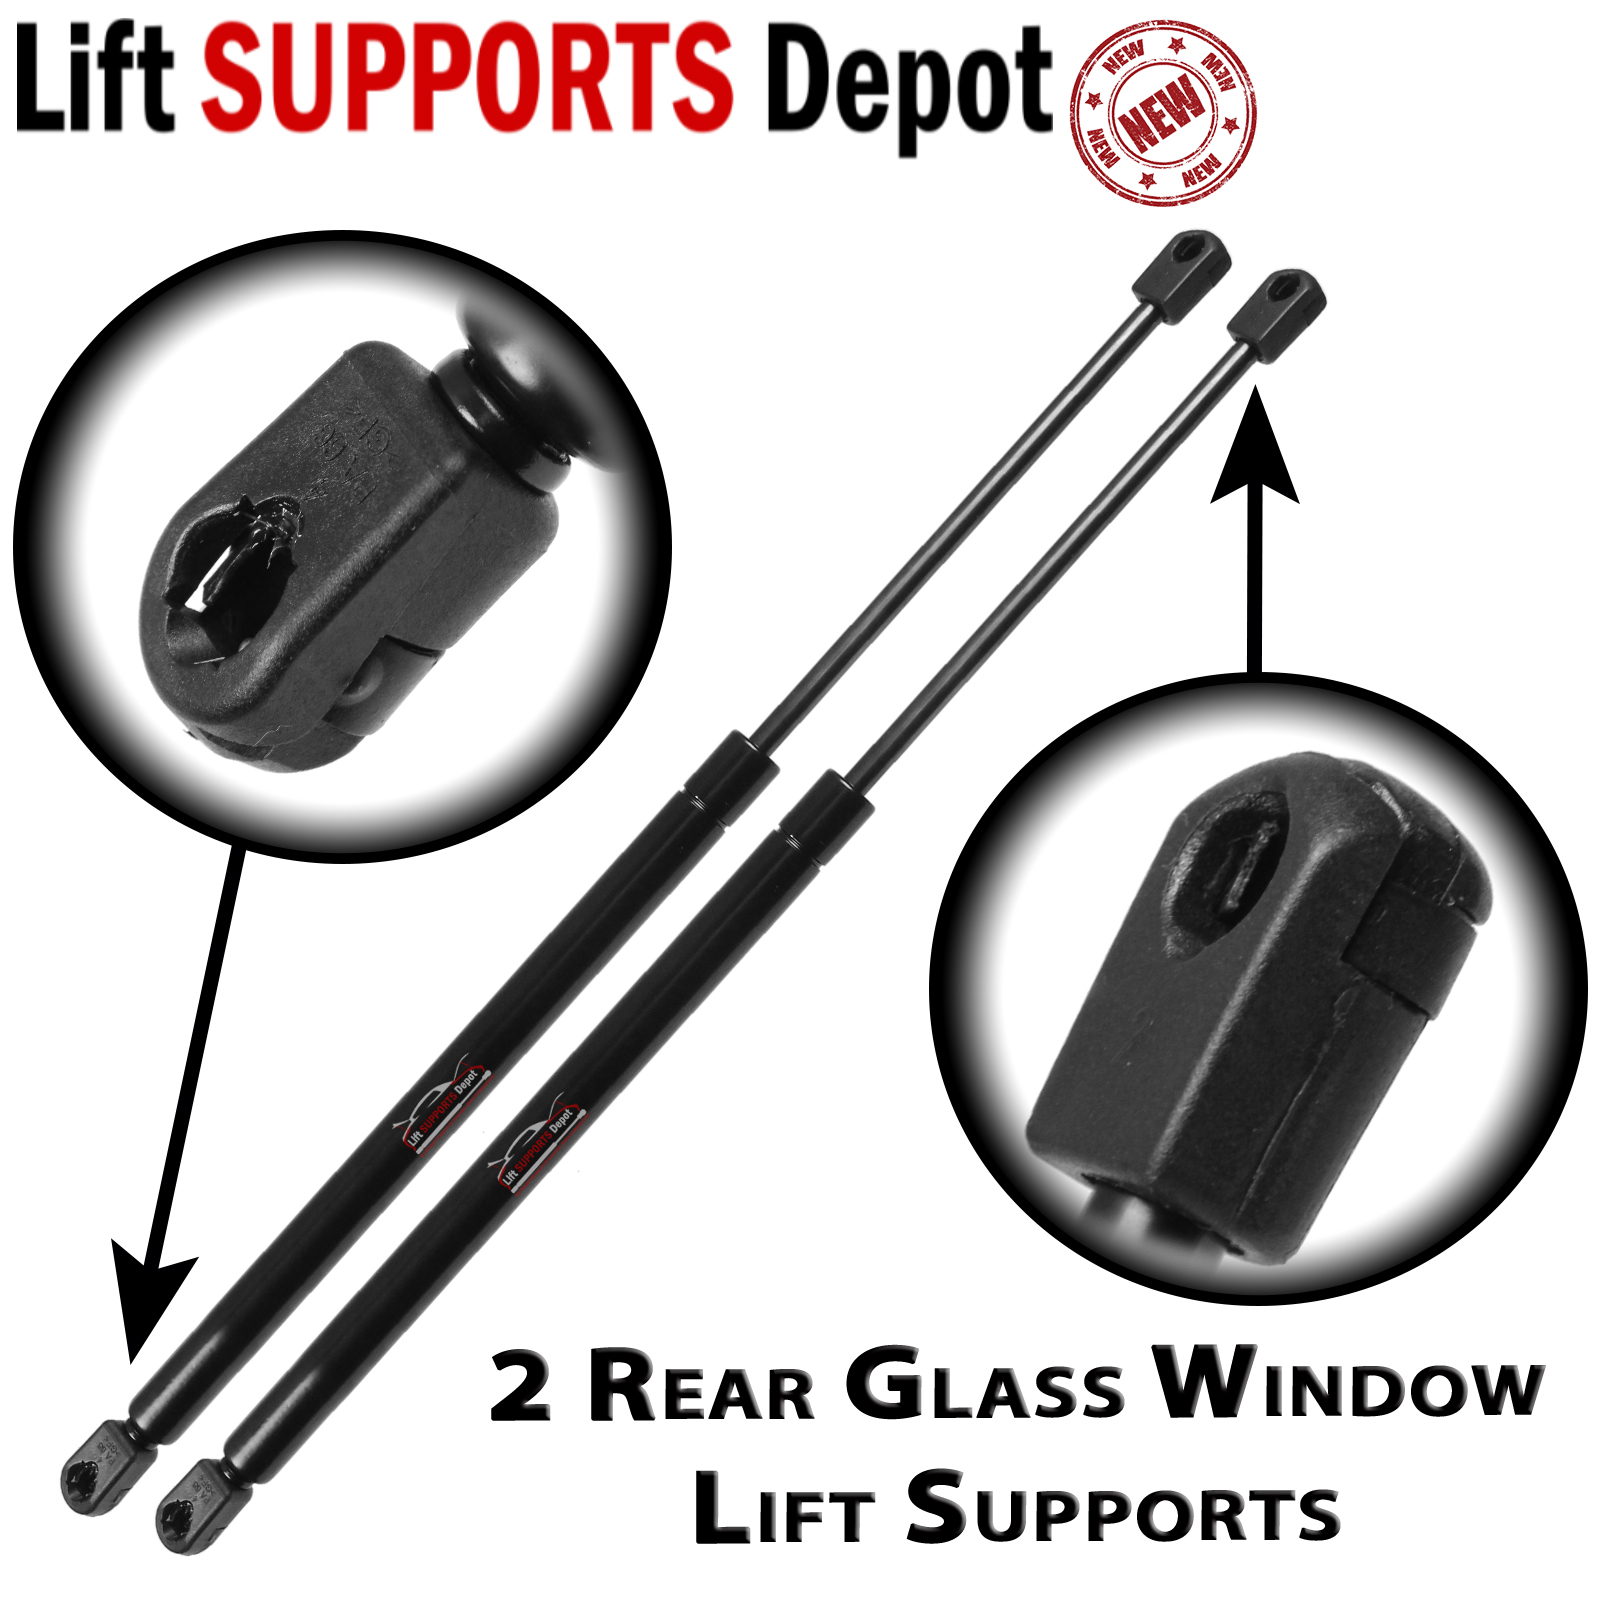 Qty 2 ford explorer from 03 03 2002 window lift supports for 2002 ford explorer rear window struts